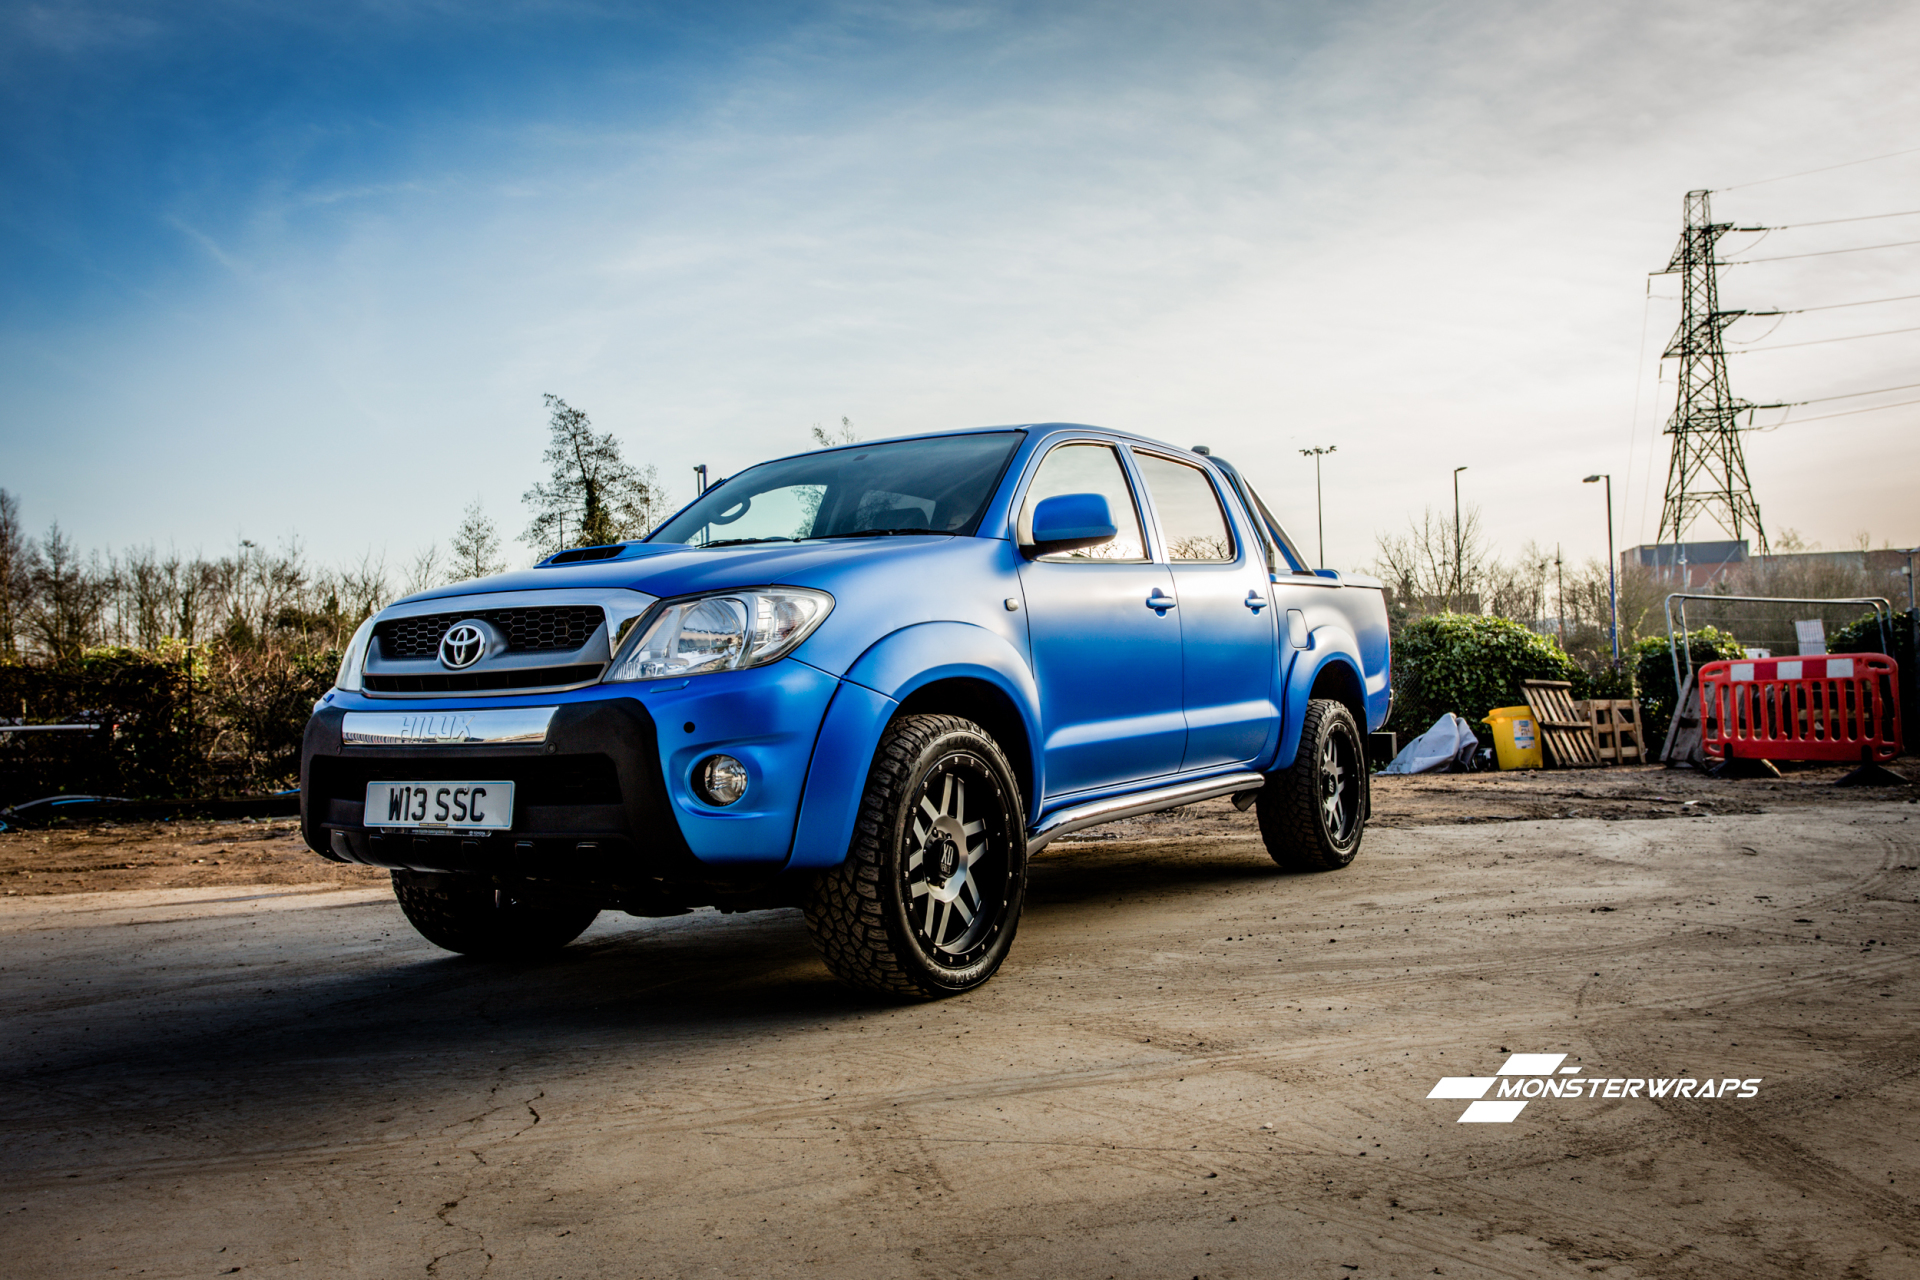 Toyota Hilux Satin Perfect Blue full wrap